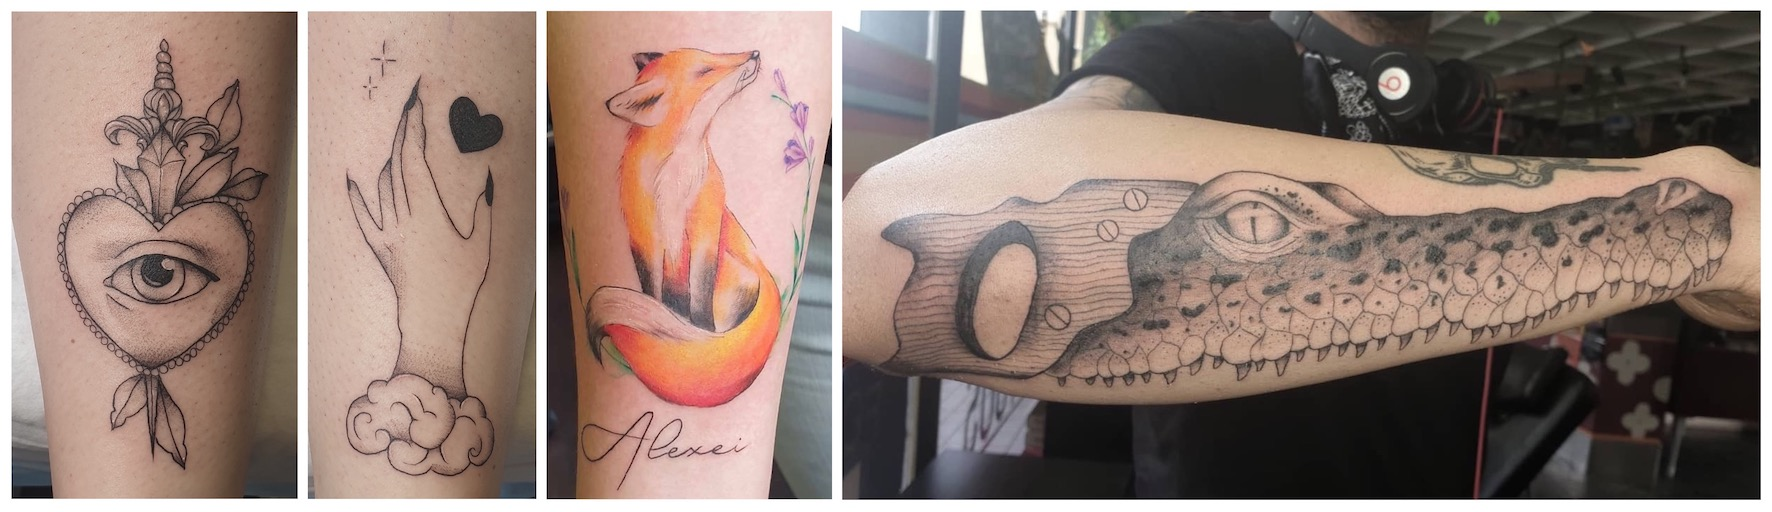 Tattoo work done by Megan Fourie